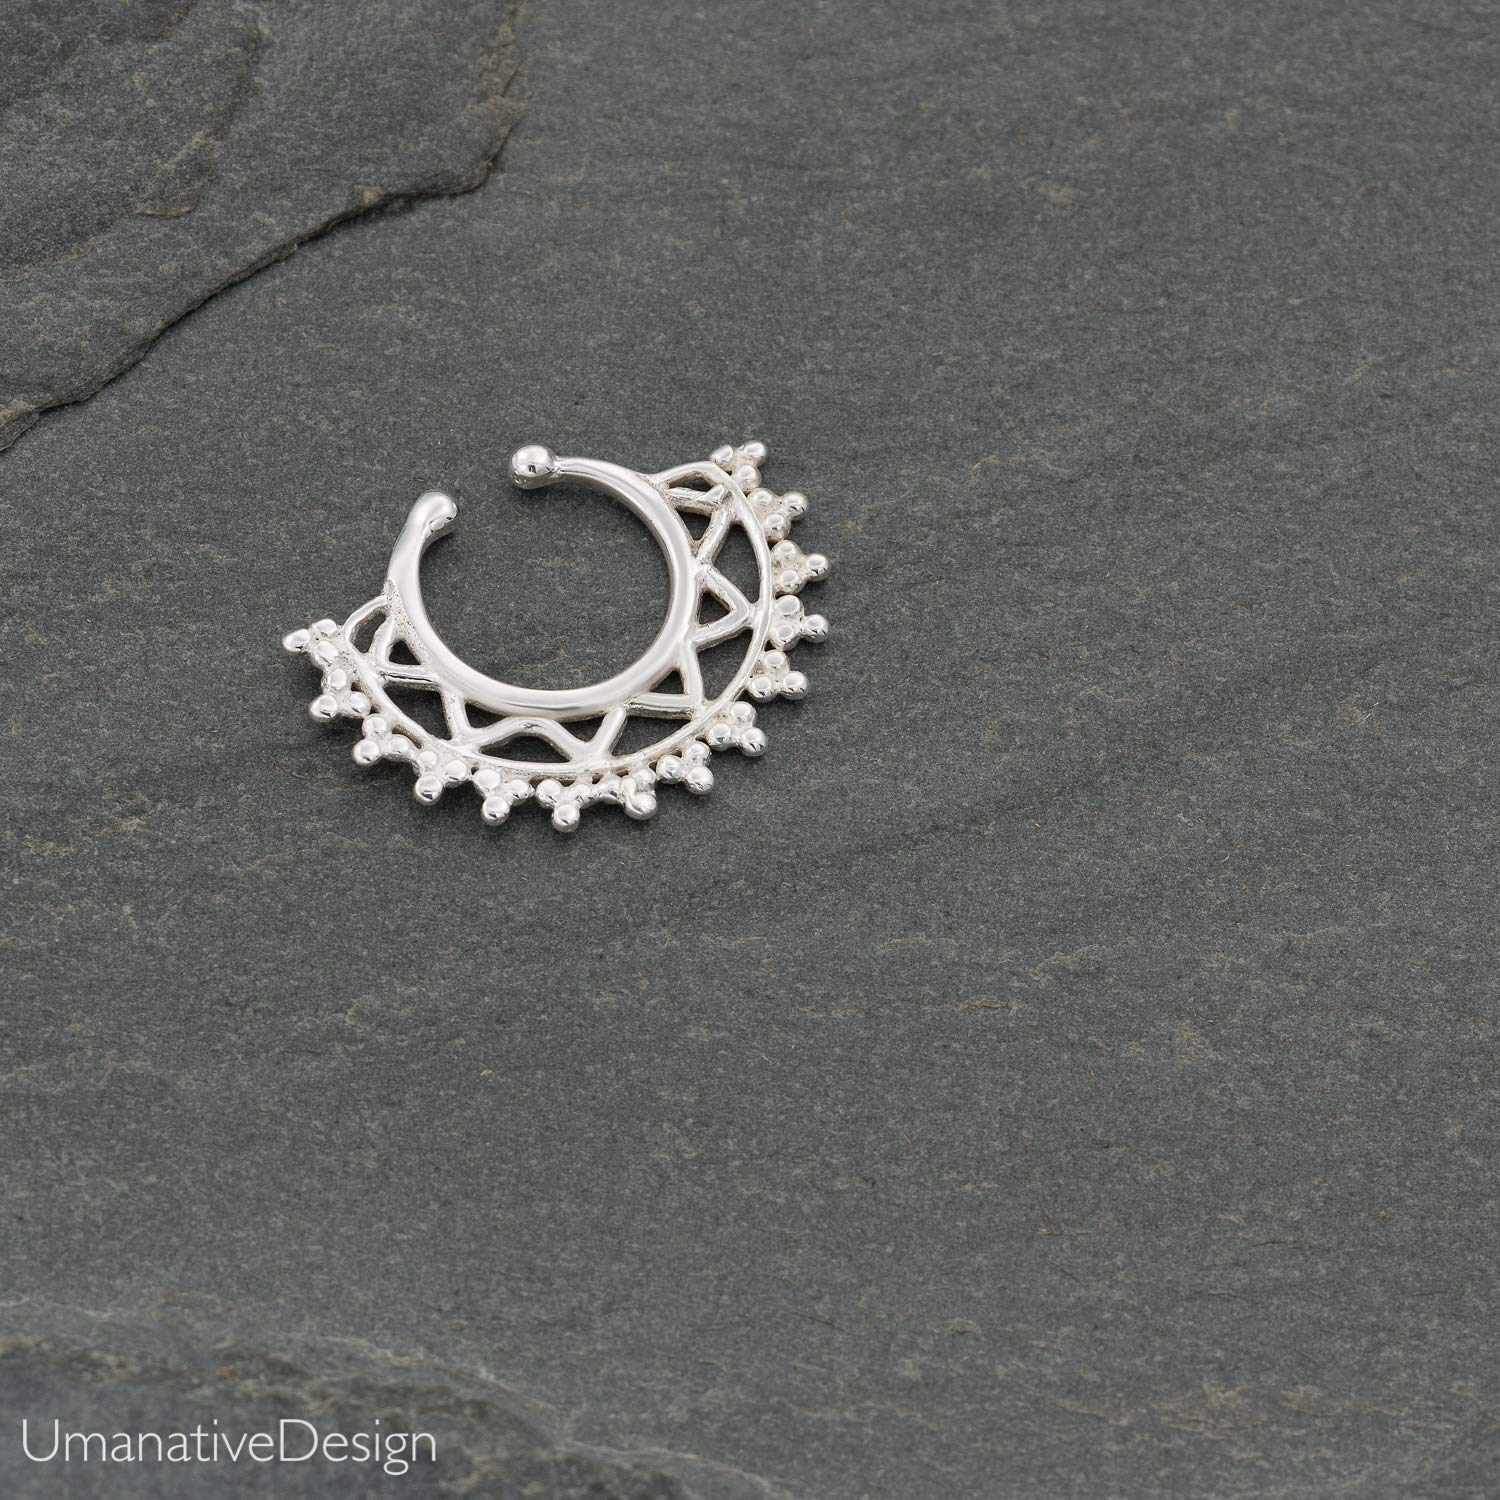 Handmade Piercing Jewelry Fake Septum Nose Ring Sterling Silver Indian Tribal Faux Clip On Non-Pierced Septum Cuff